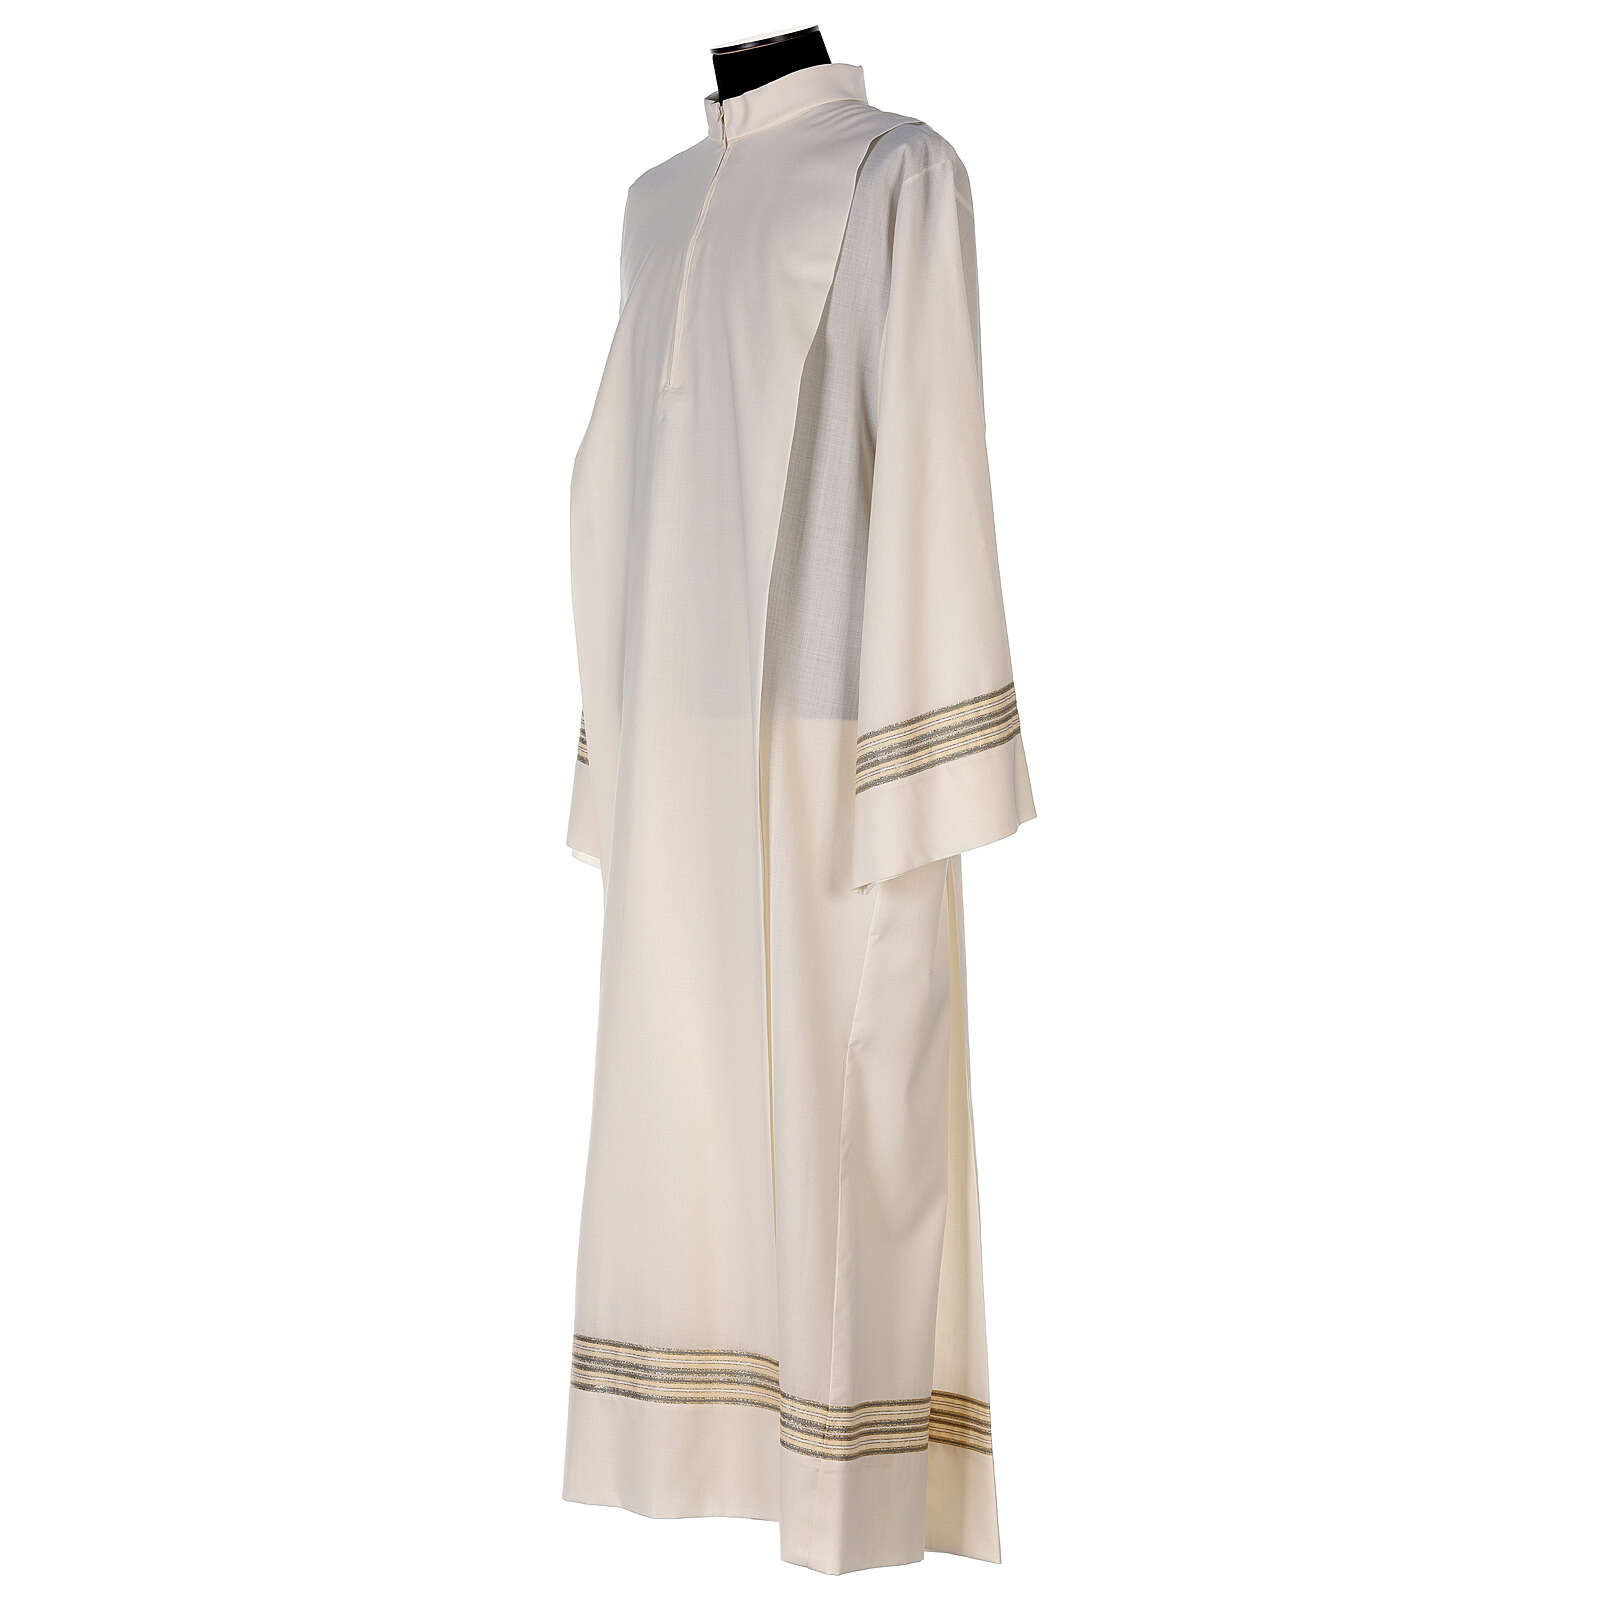 Aube 55% polyester 45% laine rayures or ivoire 4